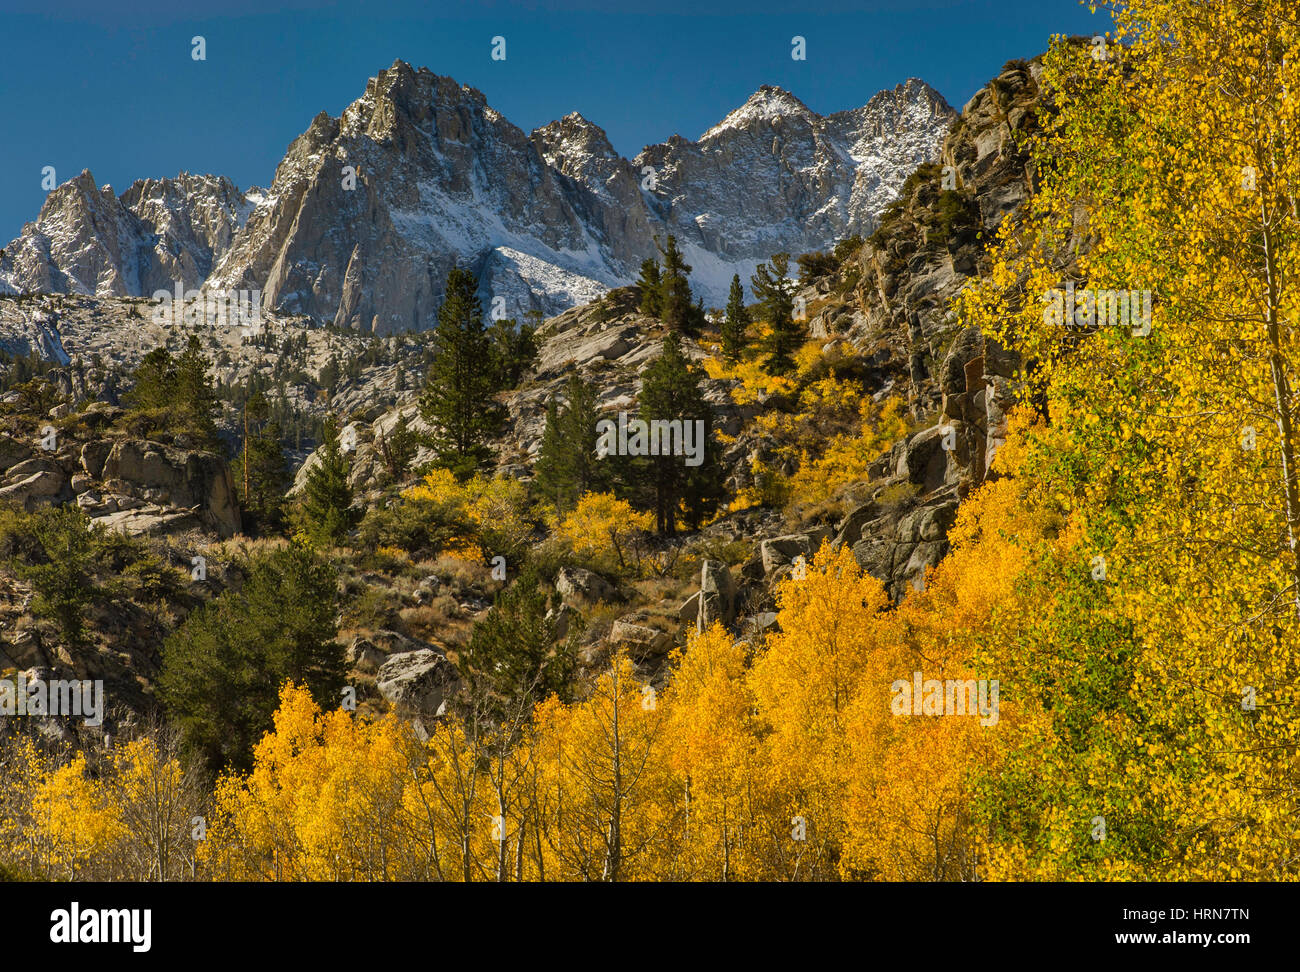 Picture Peak Mount Haeckel, Mount Wallace, fall foliage in Lake Sabrina Basin in Evolution Region, John Muir Wilderness, - Stock Image